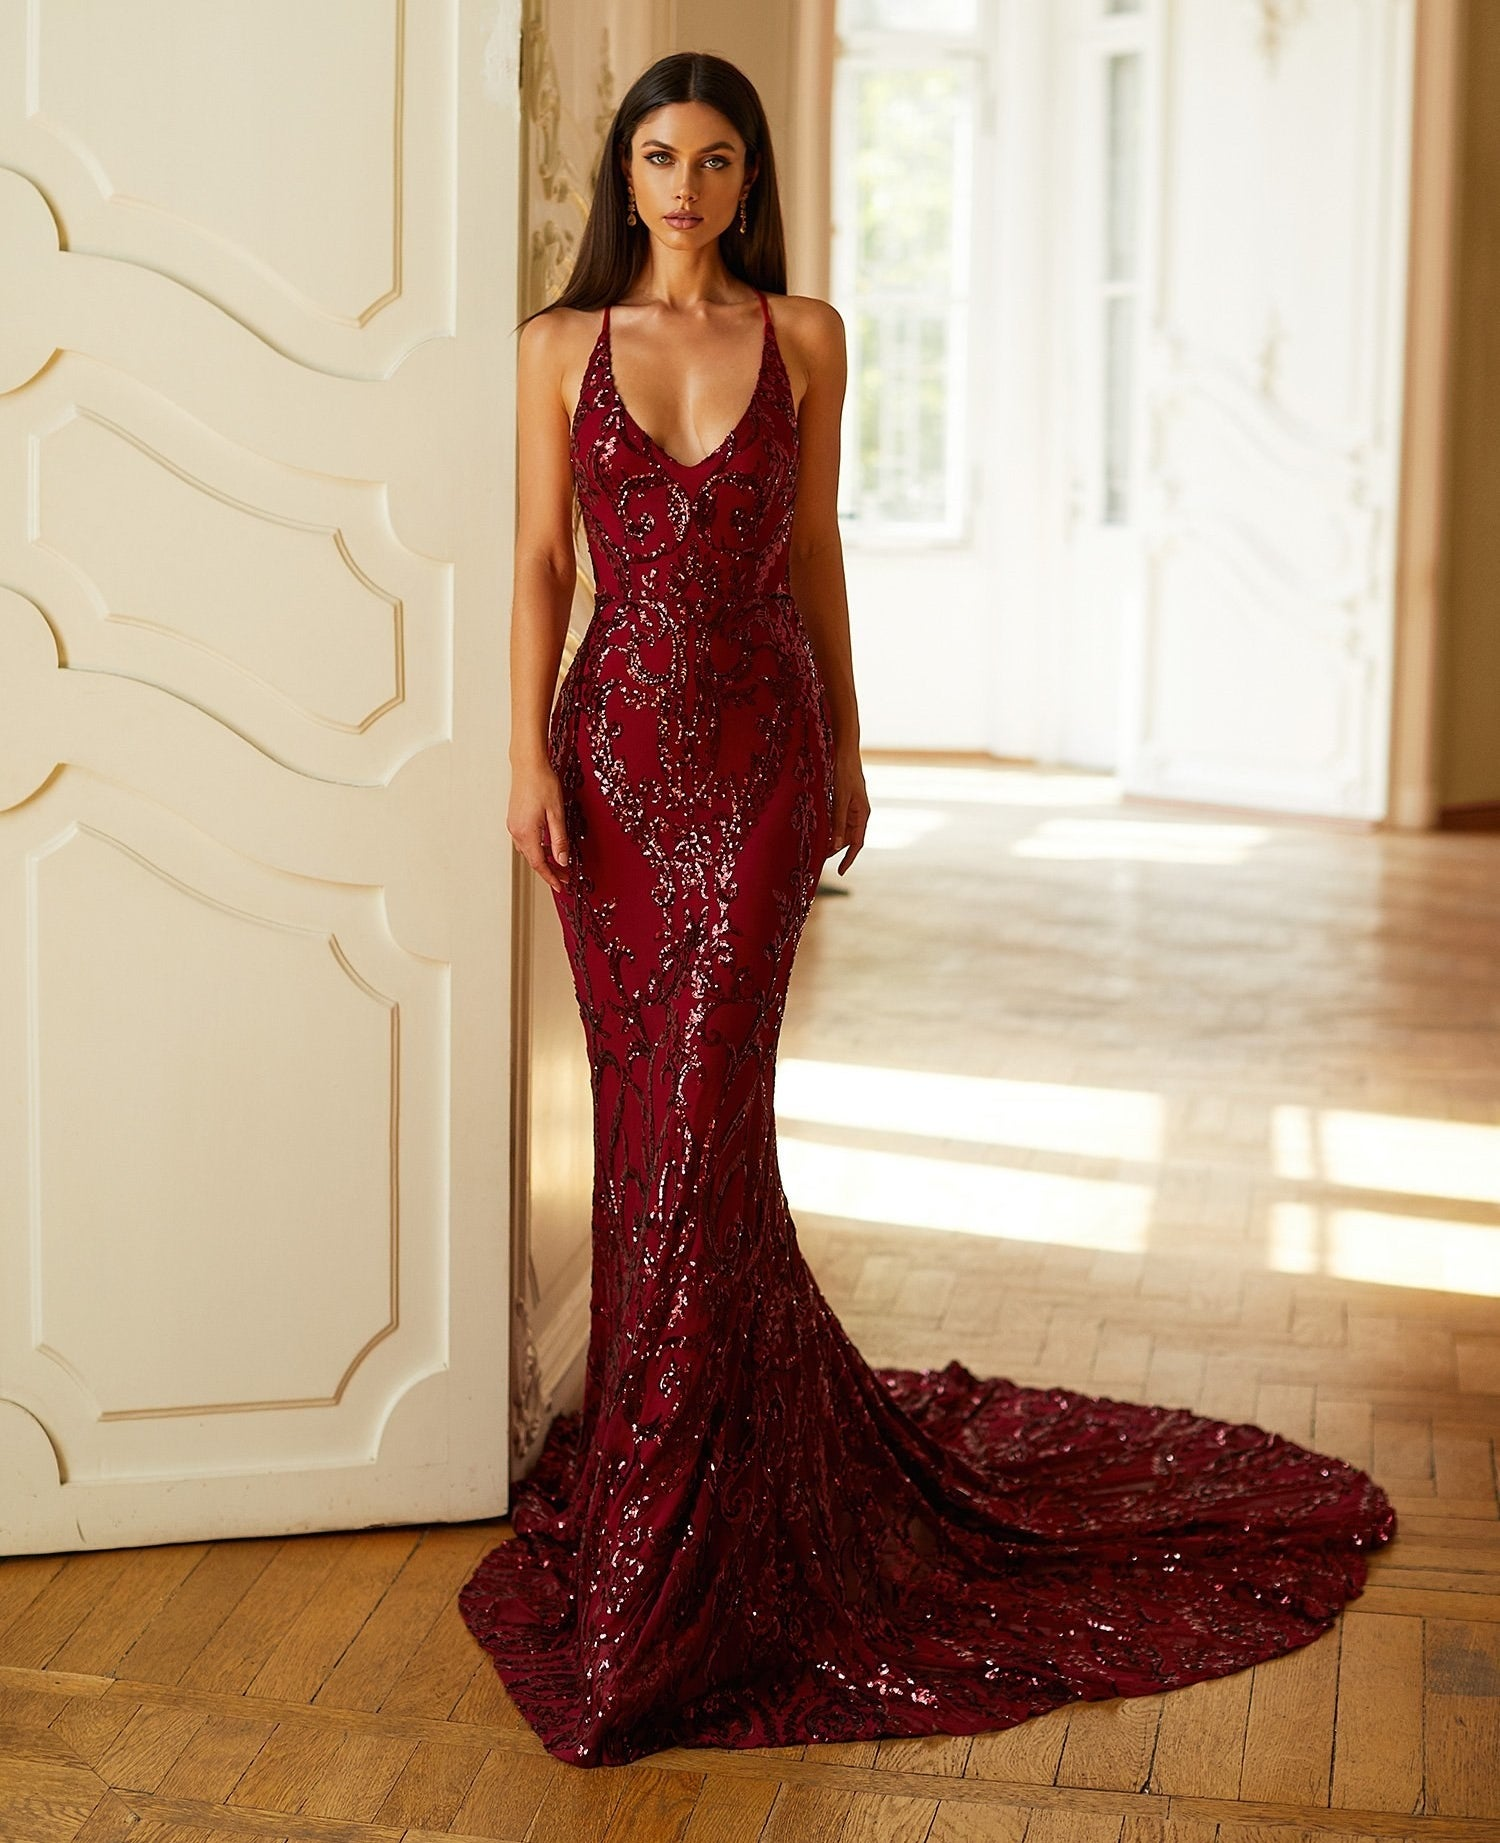 model wearing the red sequin dress